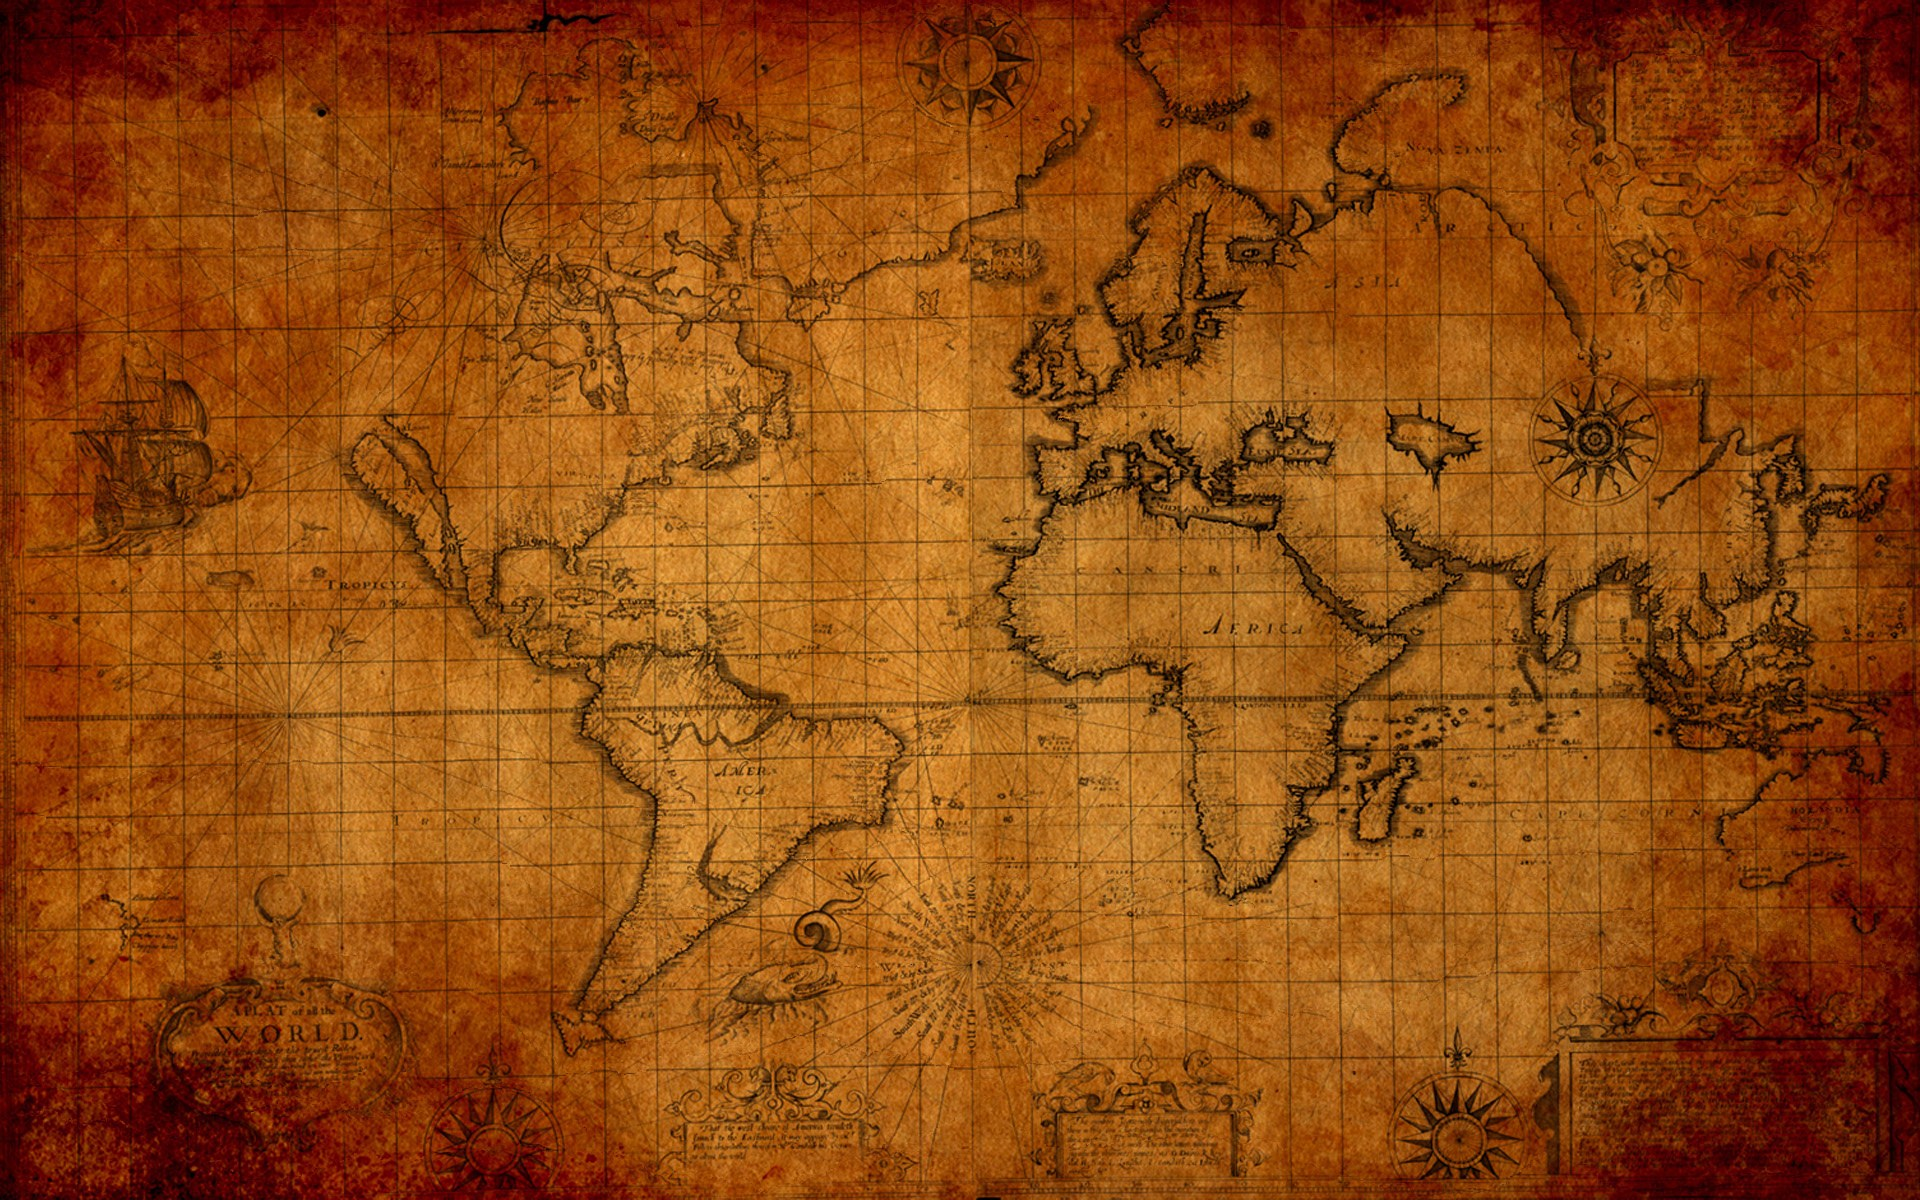 Pc wallpaper ancient world map maps wallpaperg new testament pc wallpaper ancient world map maps wallpaperg new testament christians gumiabroncs Choice Image